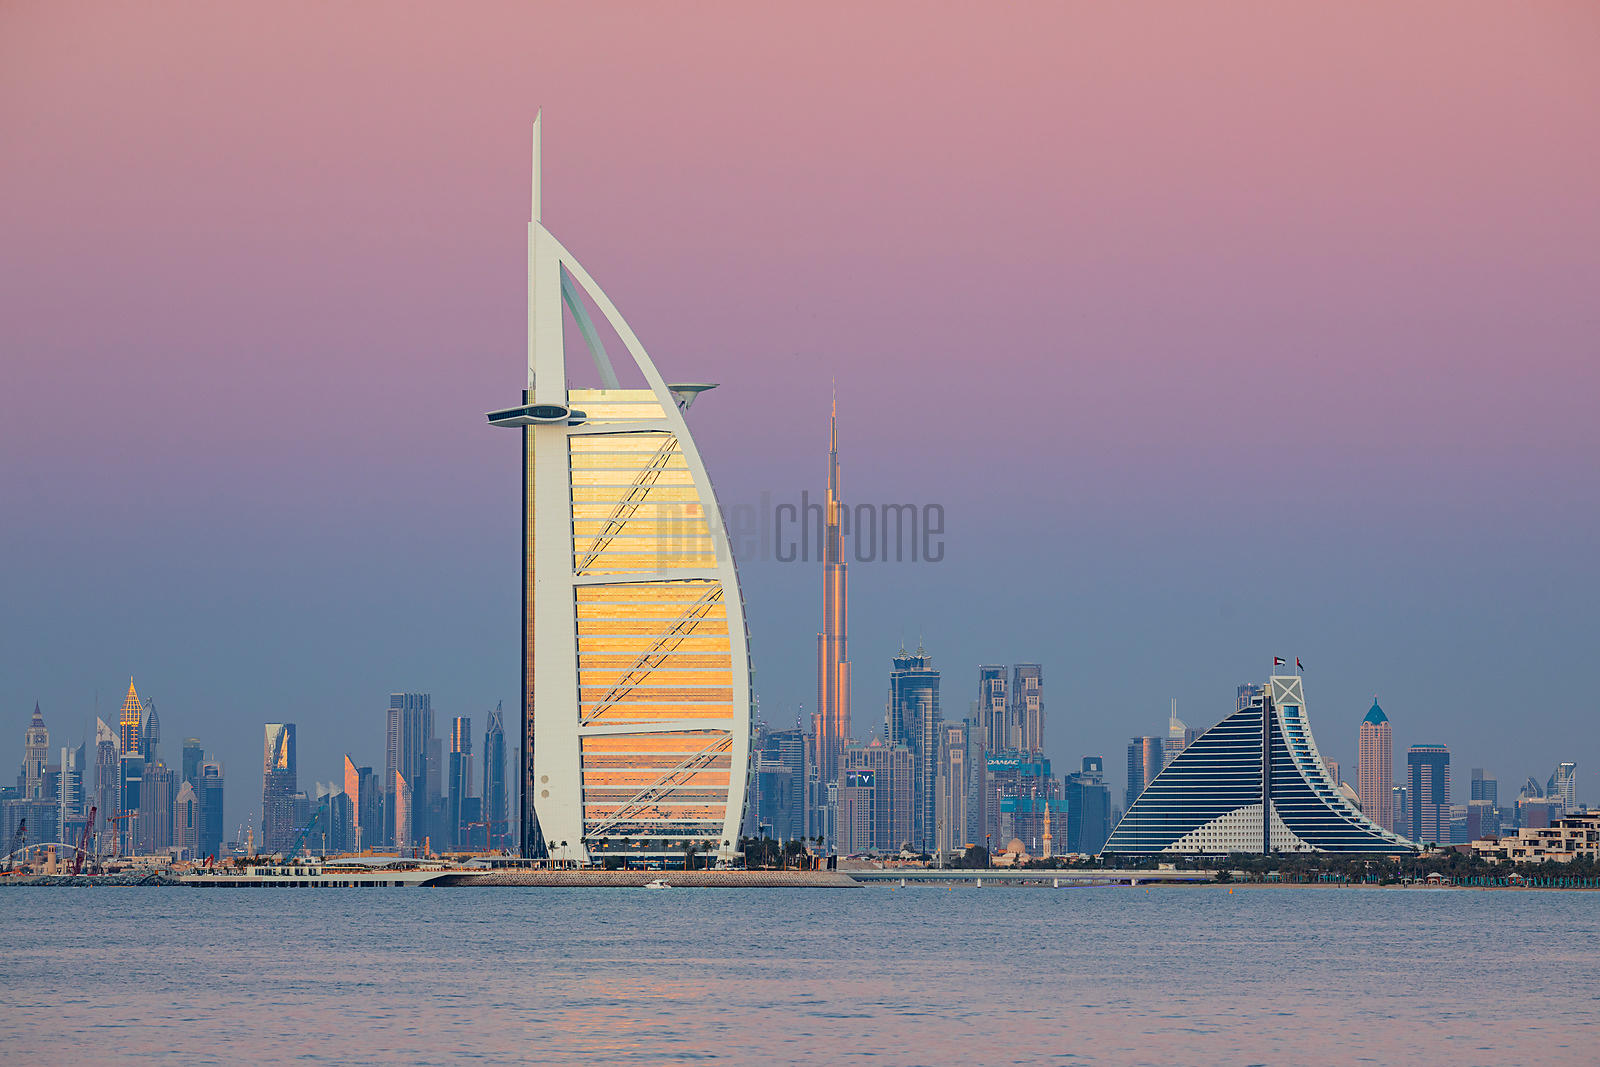 Distant View of the Burj al Arab and the Skyline of Dubai at Dusk